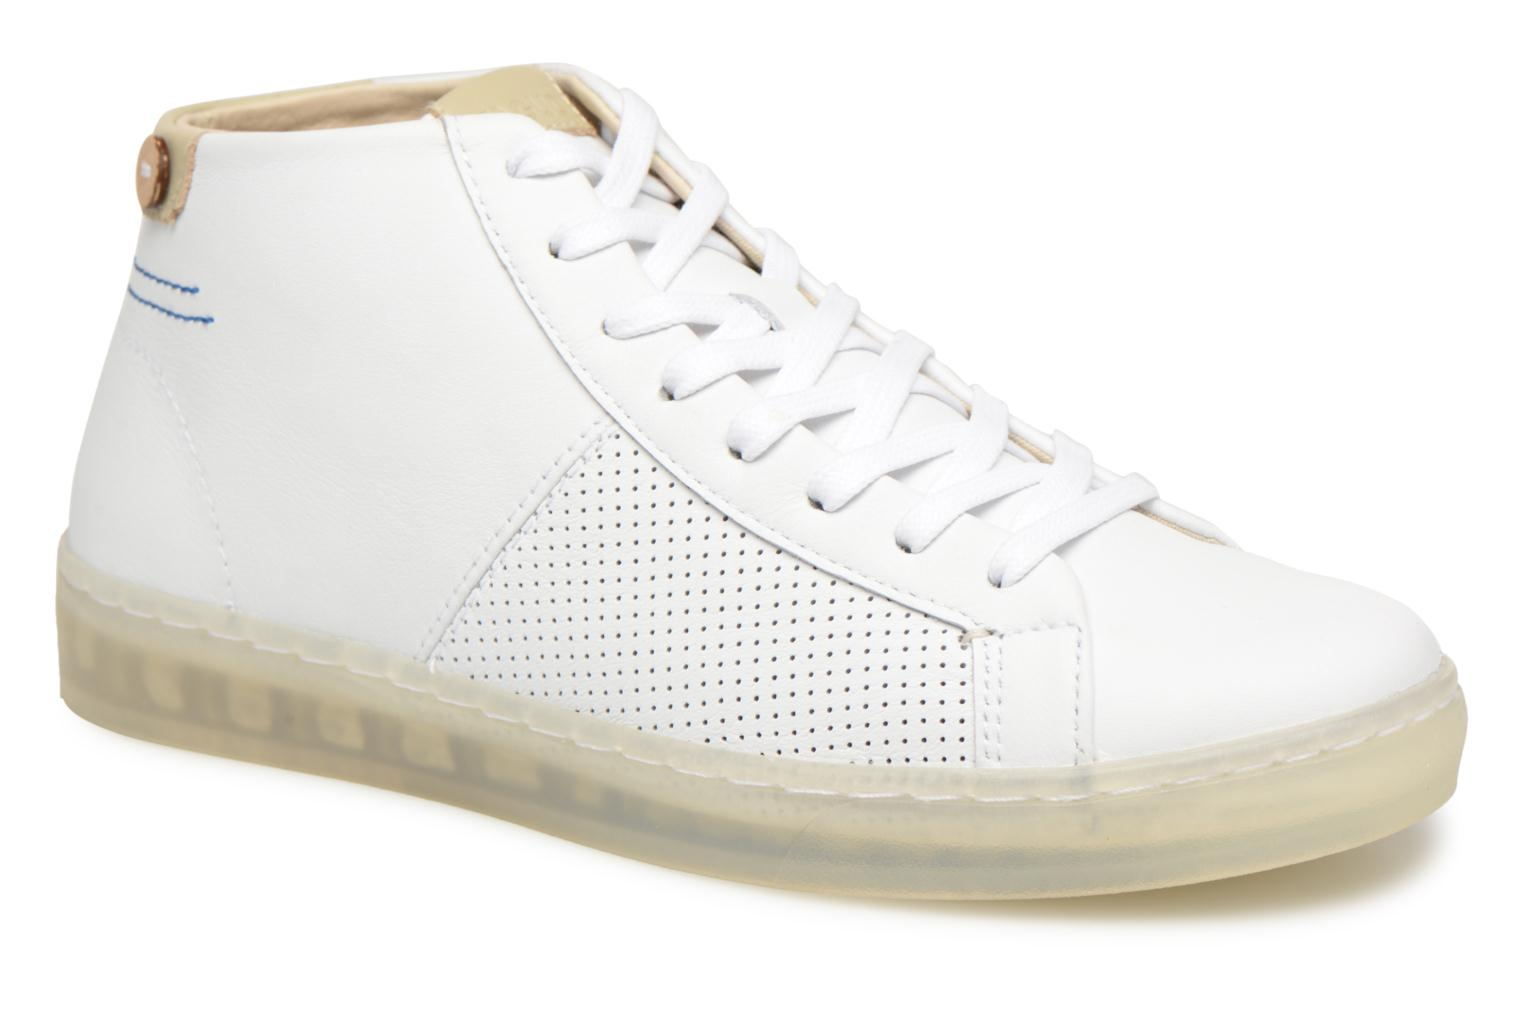 Marques Chaussure femme Faguo femme ASPEN04 S1810 WHI